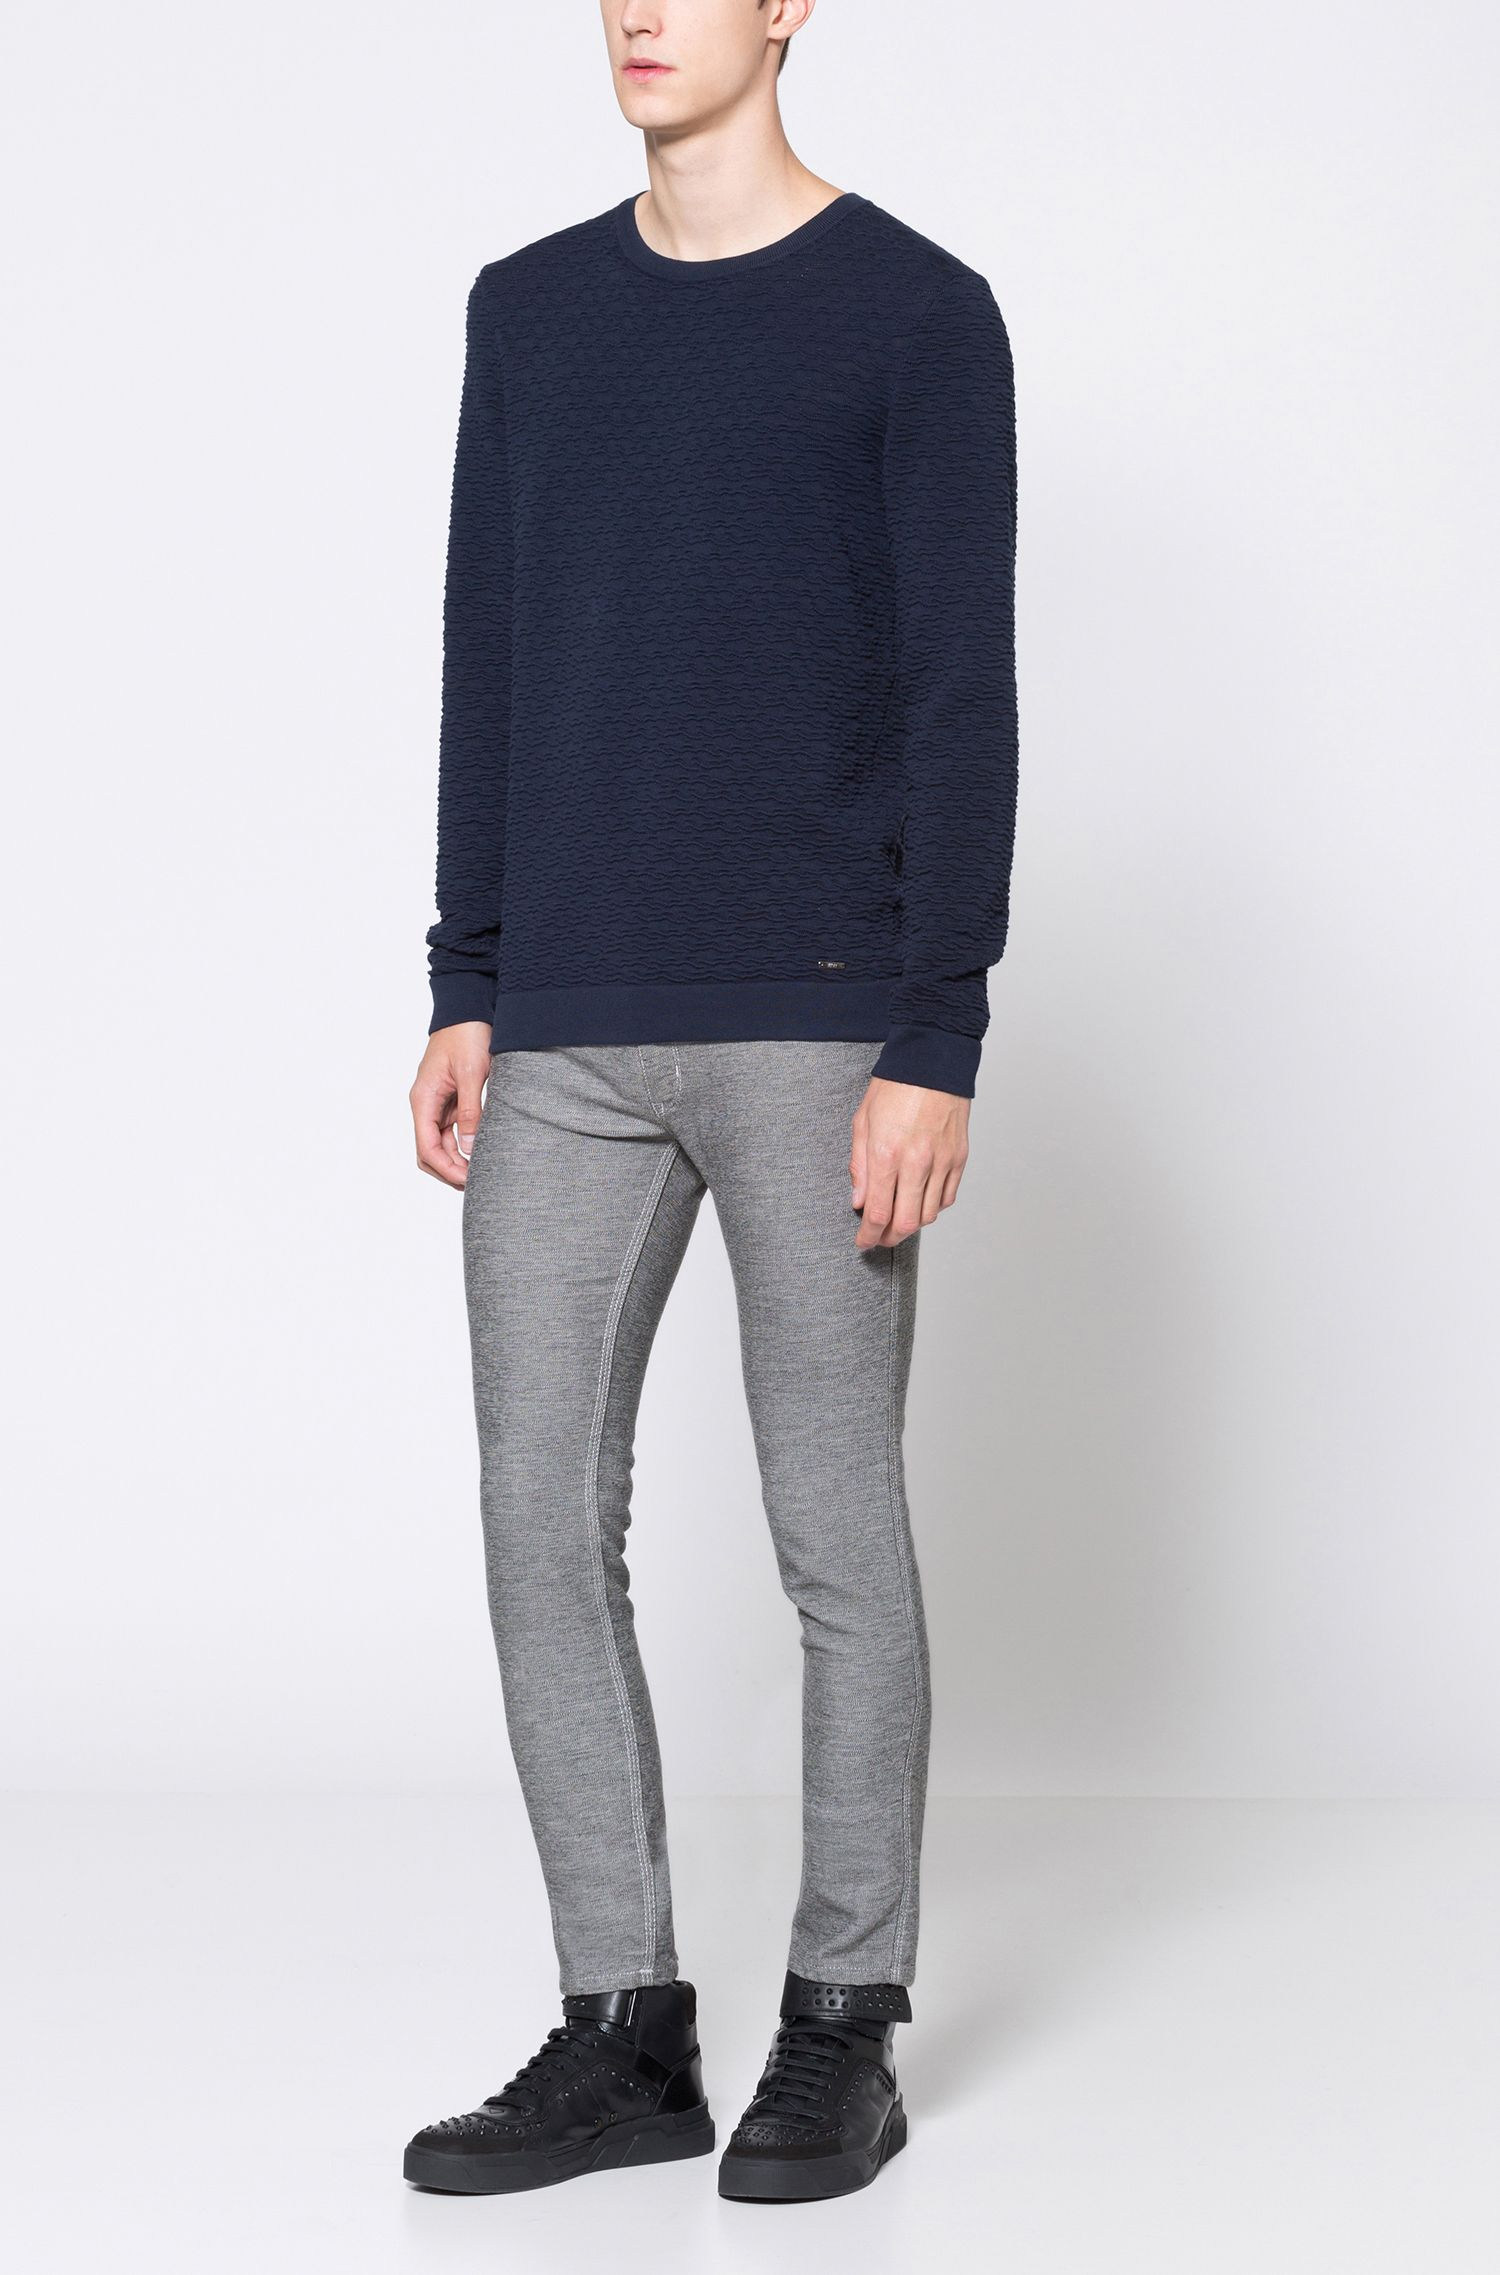 Crew-neck sweater in 3D-textured cotton jacquard